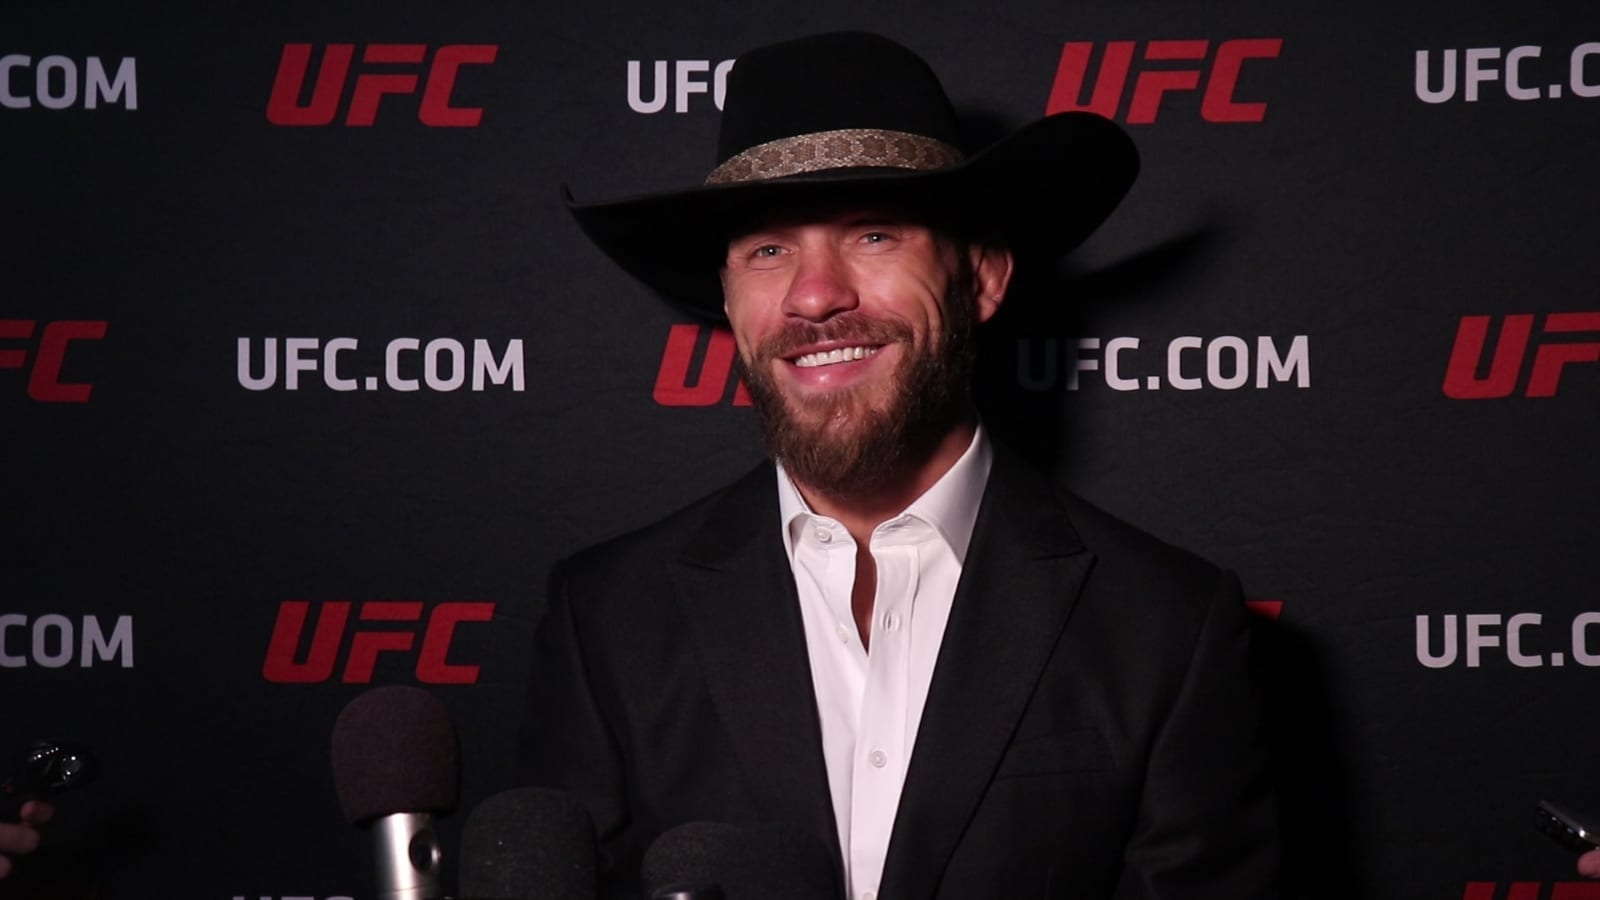 """Donald Cerrone on Diego Sanchez: """"He wants this to be his ride into the sunset, and I have no problem giving it to him."""" thumbnail"""